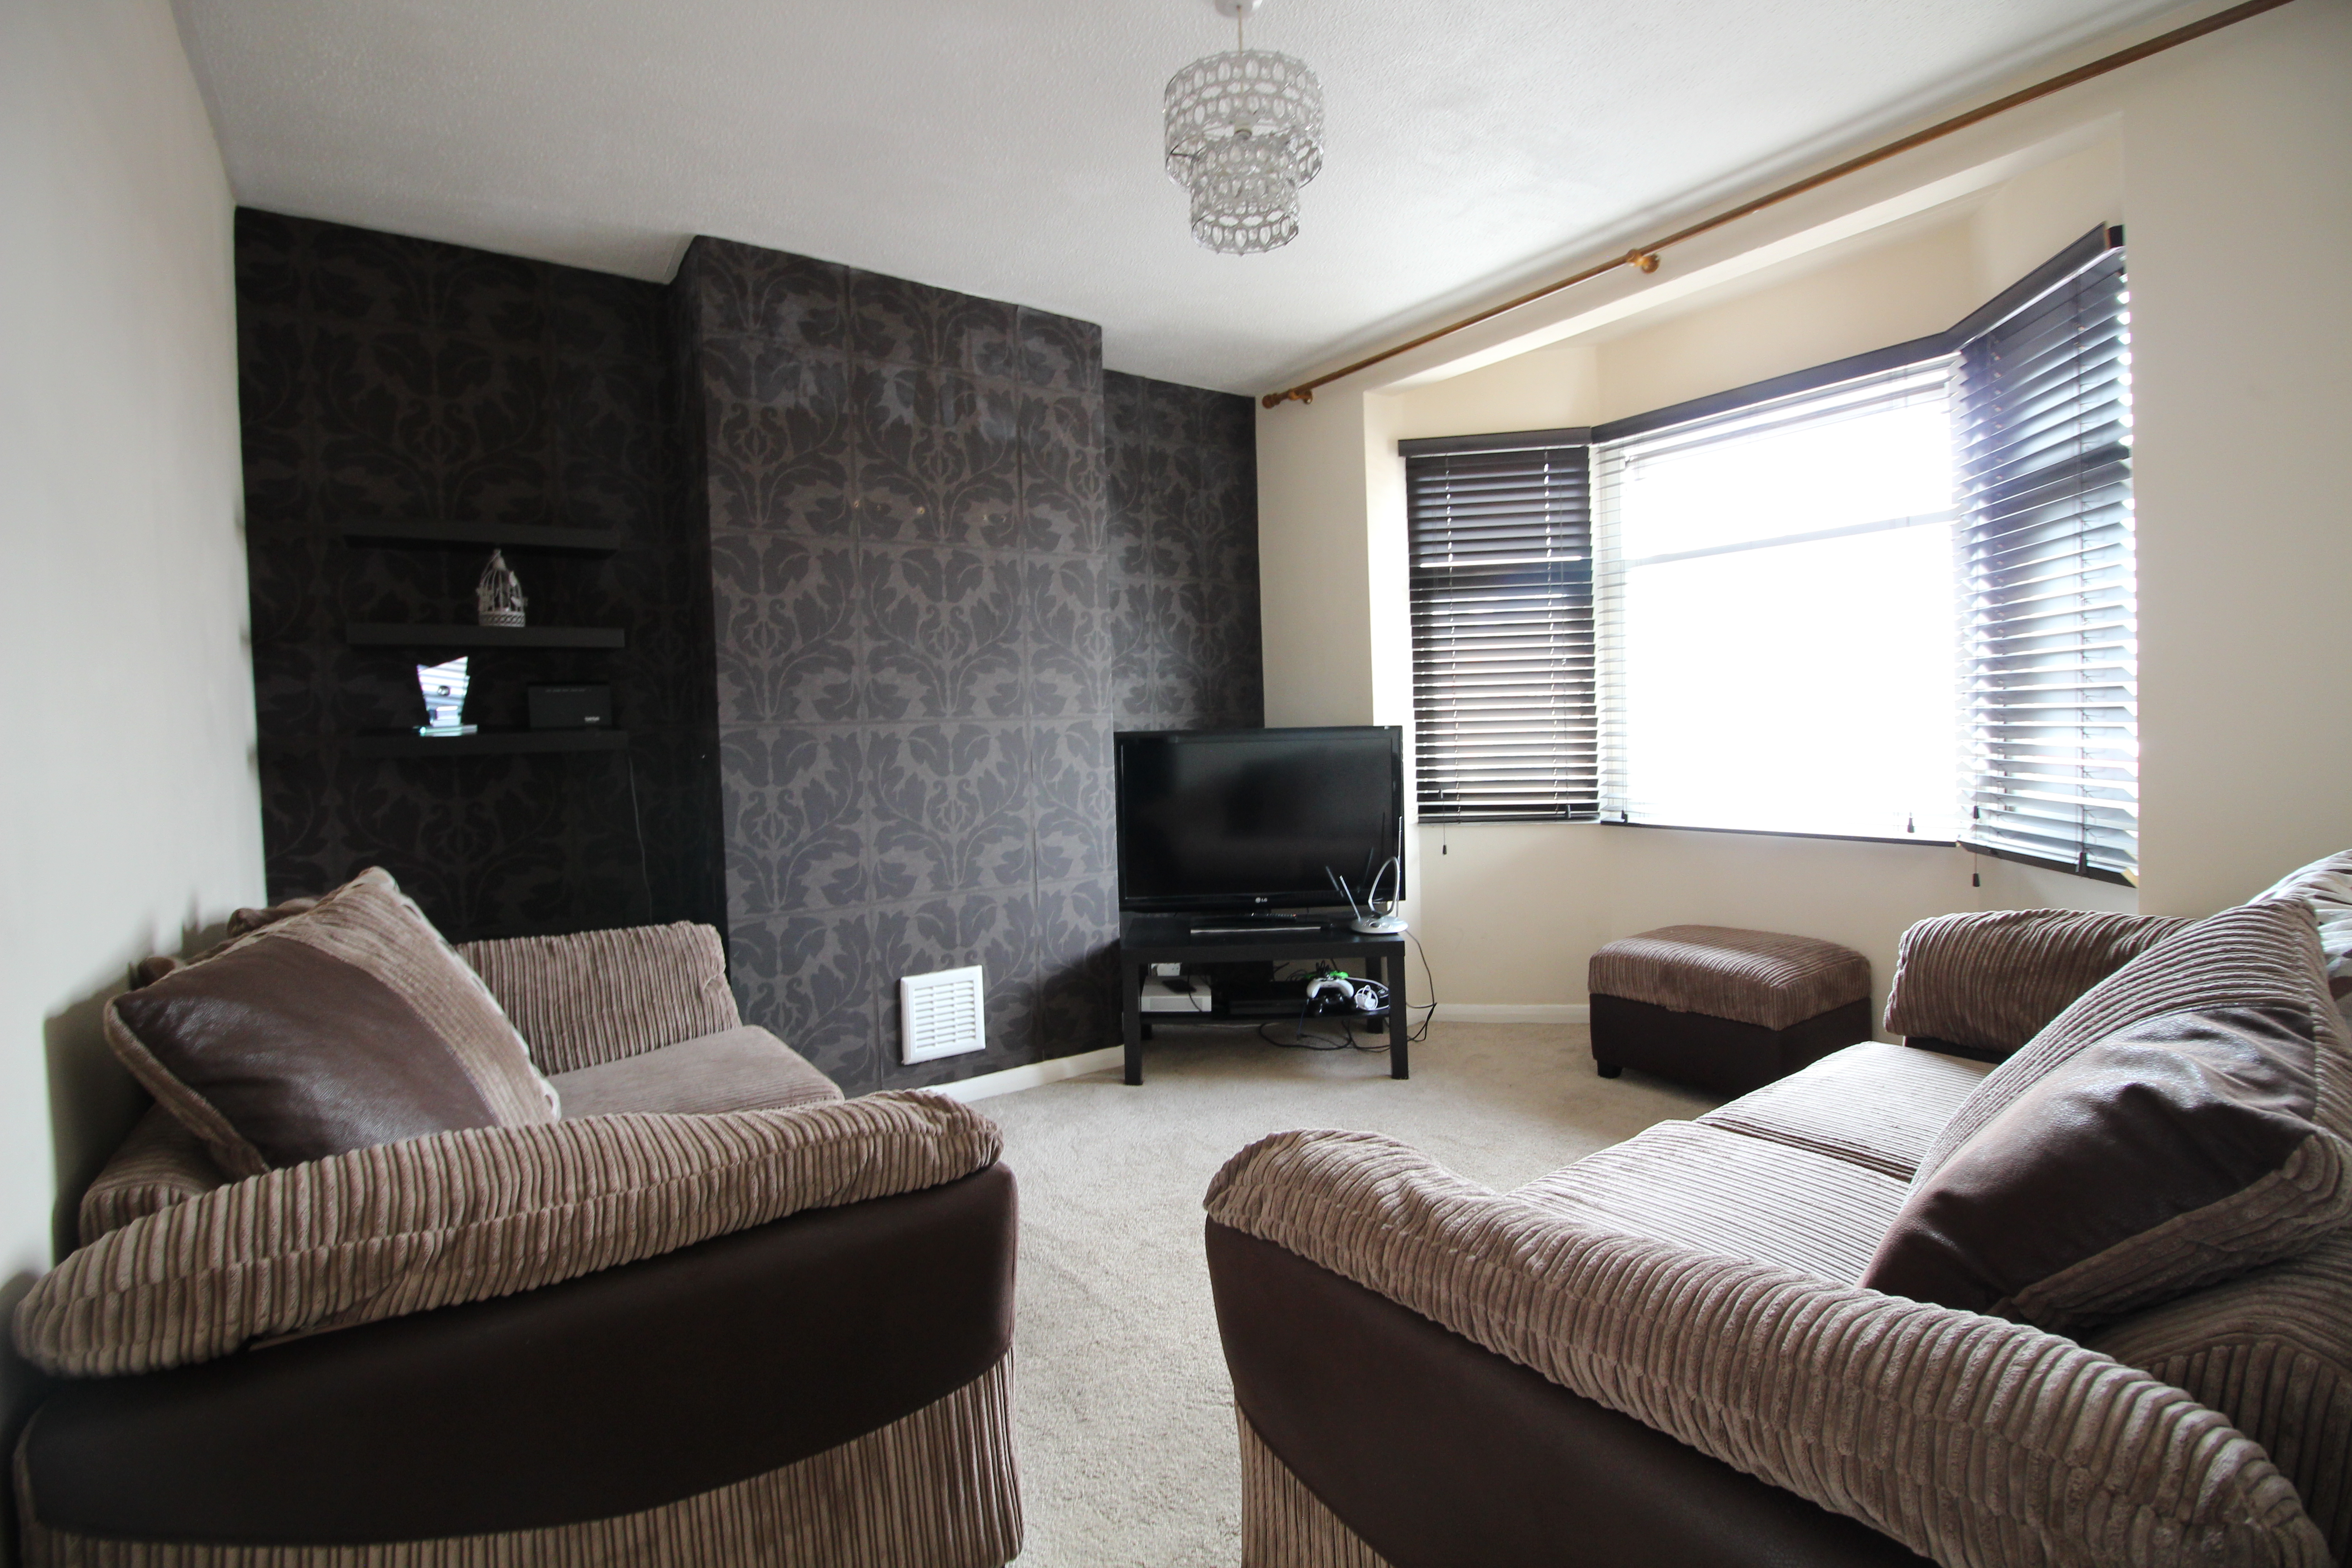 Romford RM1, 1 Bedroom Flat, All Bills included – £277pw